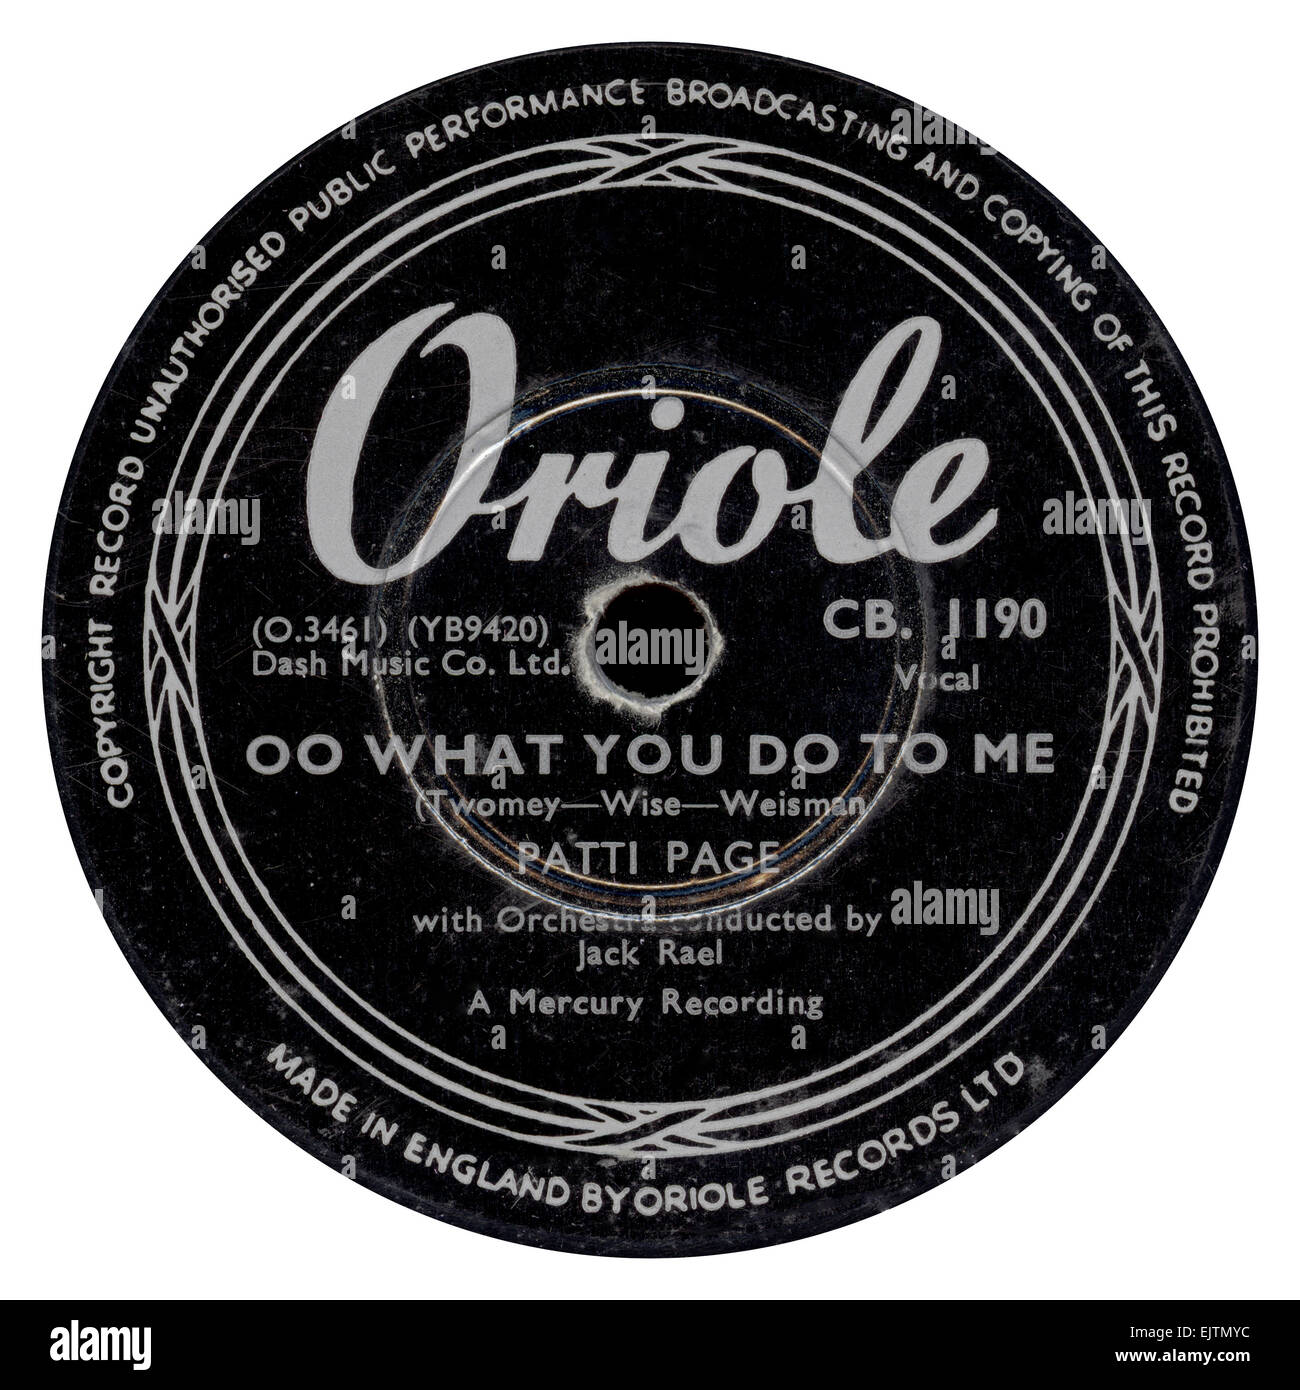 Oriole 78 rpm record label released July 1953 by Patti Page - Stock Image